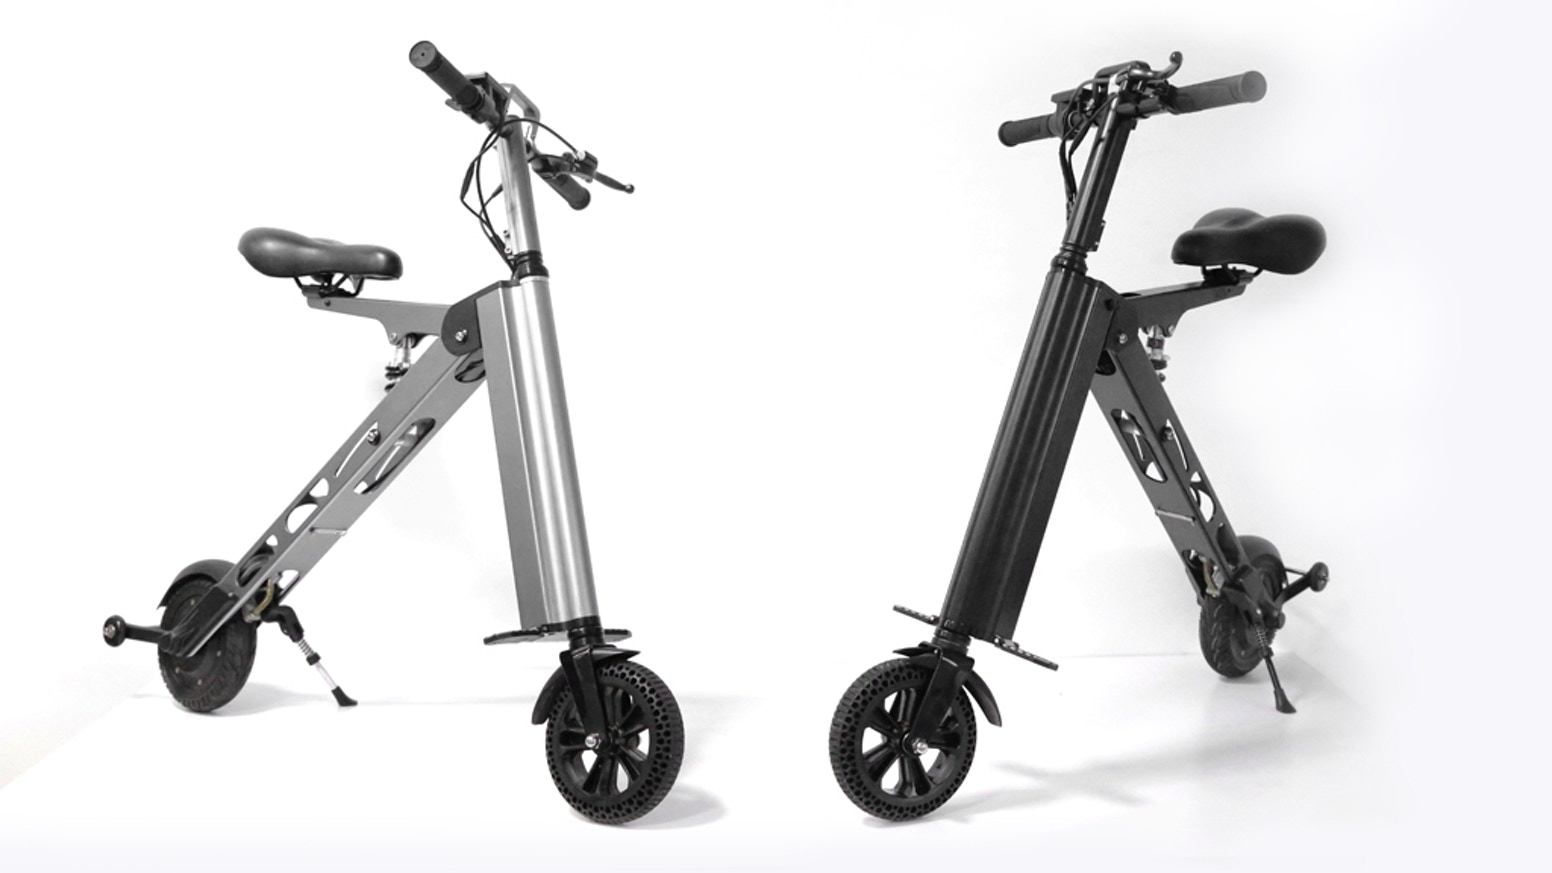 This lightweight electric scooter that folds is designed for modern, mobile individuals who are looking for hassle free transportation.